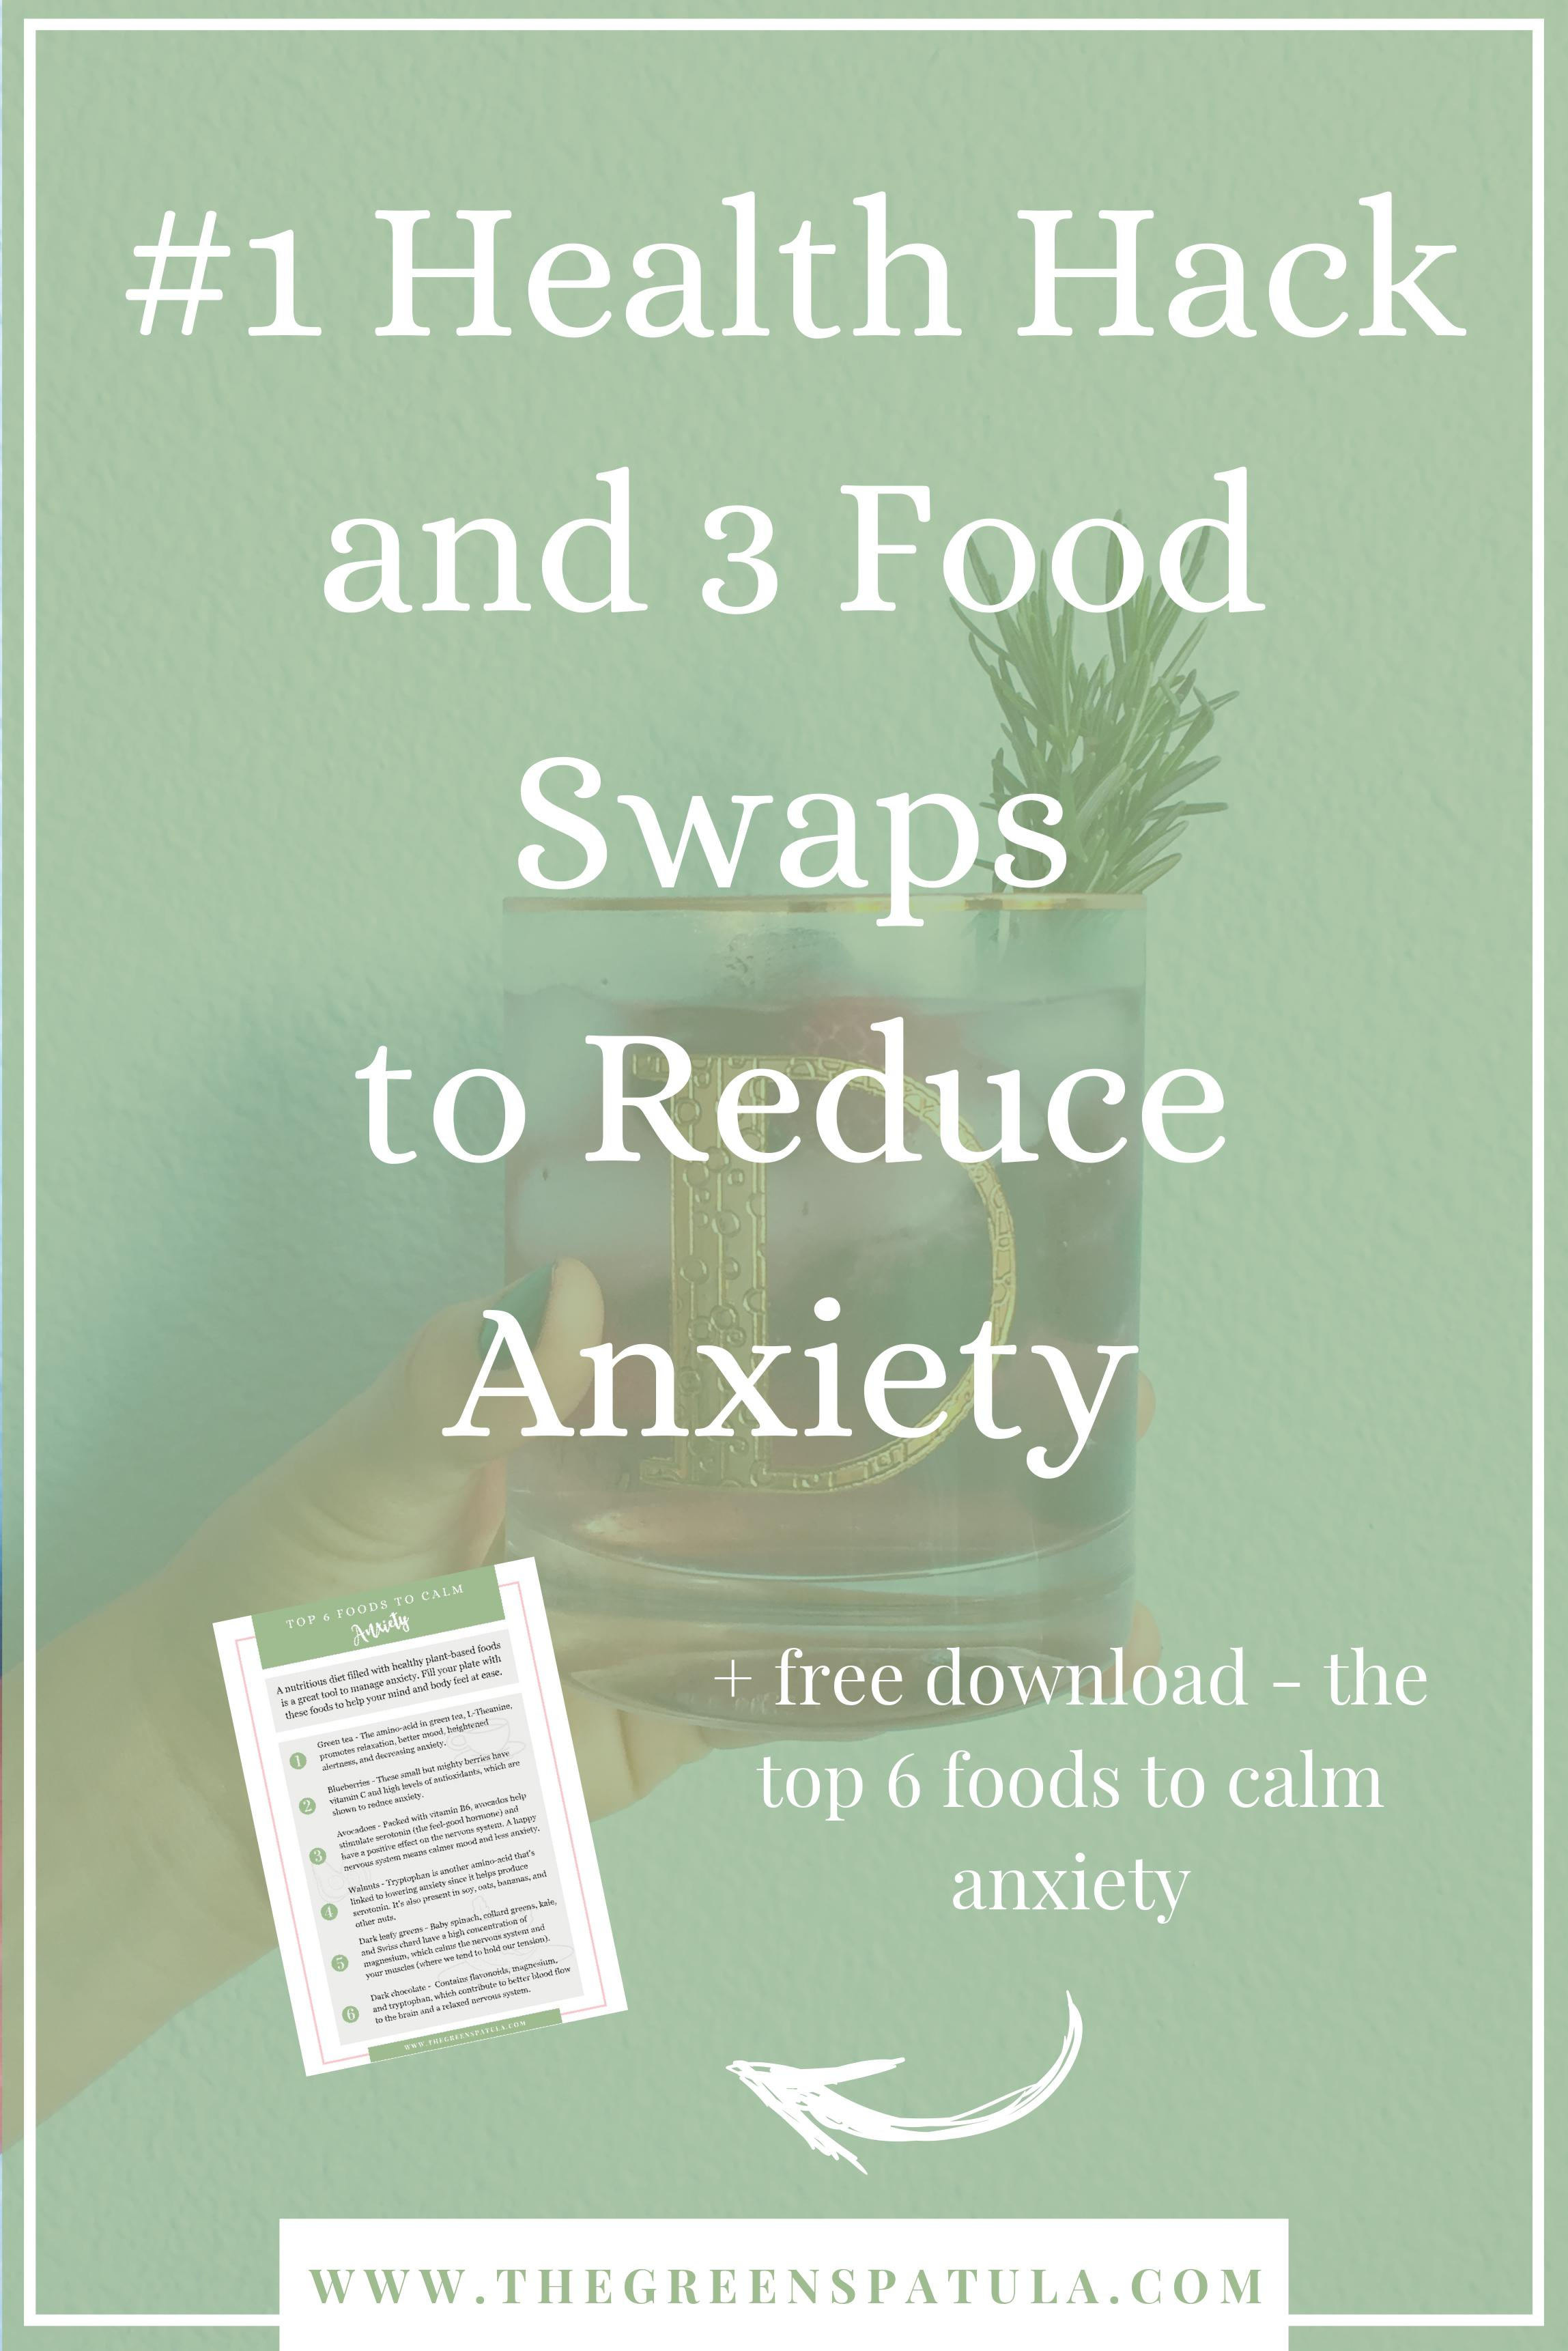 #1 Health Hack and 3 Food Swaps to Reduce Anxiety - Anxiety and stress seem to go hand-in-hand with our hectic daily schedules and fast-paced society. Use my simple health hack to calm the body and 3 food swaps to help you manage anxiety levels. Plus, download the FREE list of the top 6 foods that help reduce anxiety and start adding them into your day. #plantbased #stressless #anxiety #mindfulness #healthy #mentalhealth